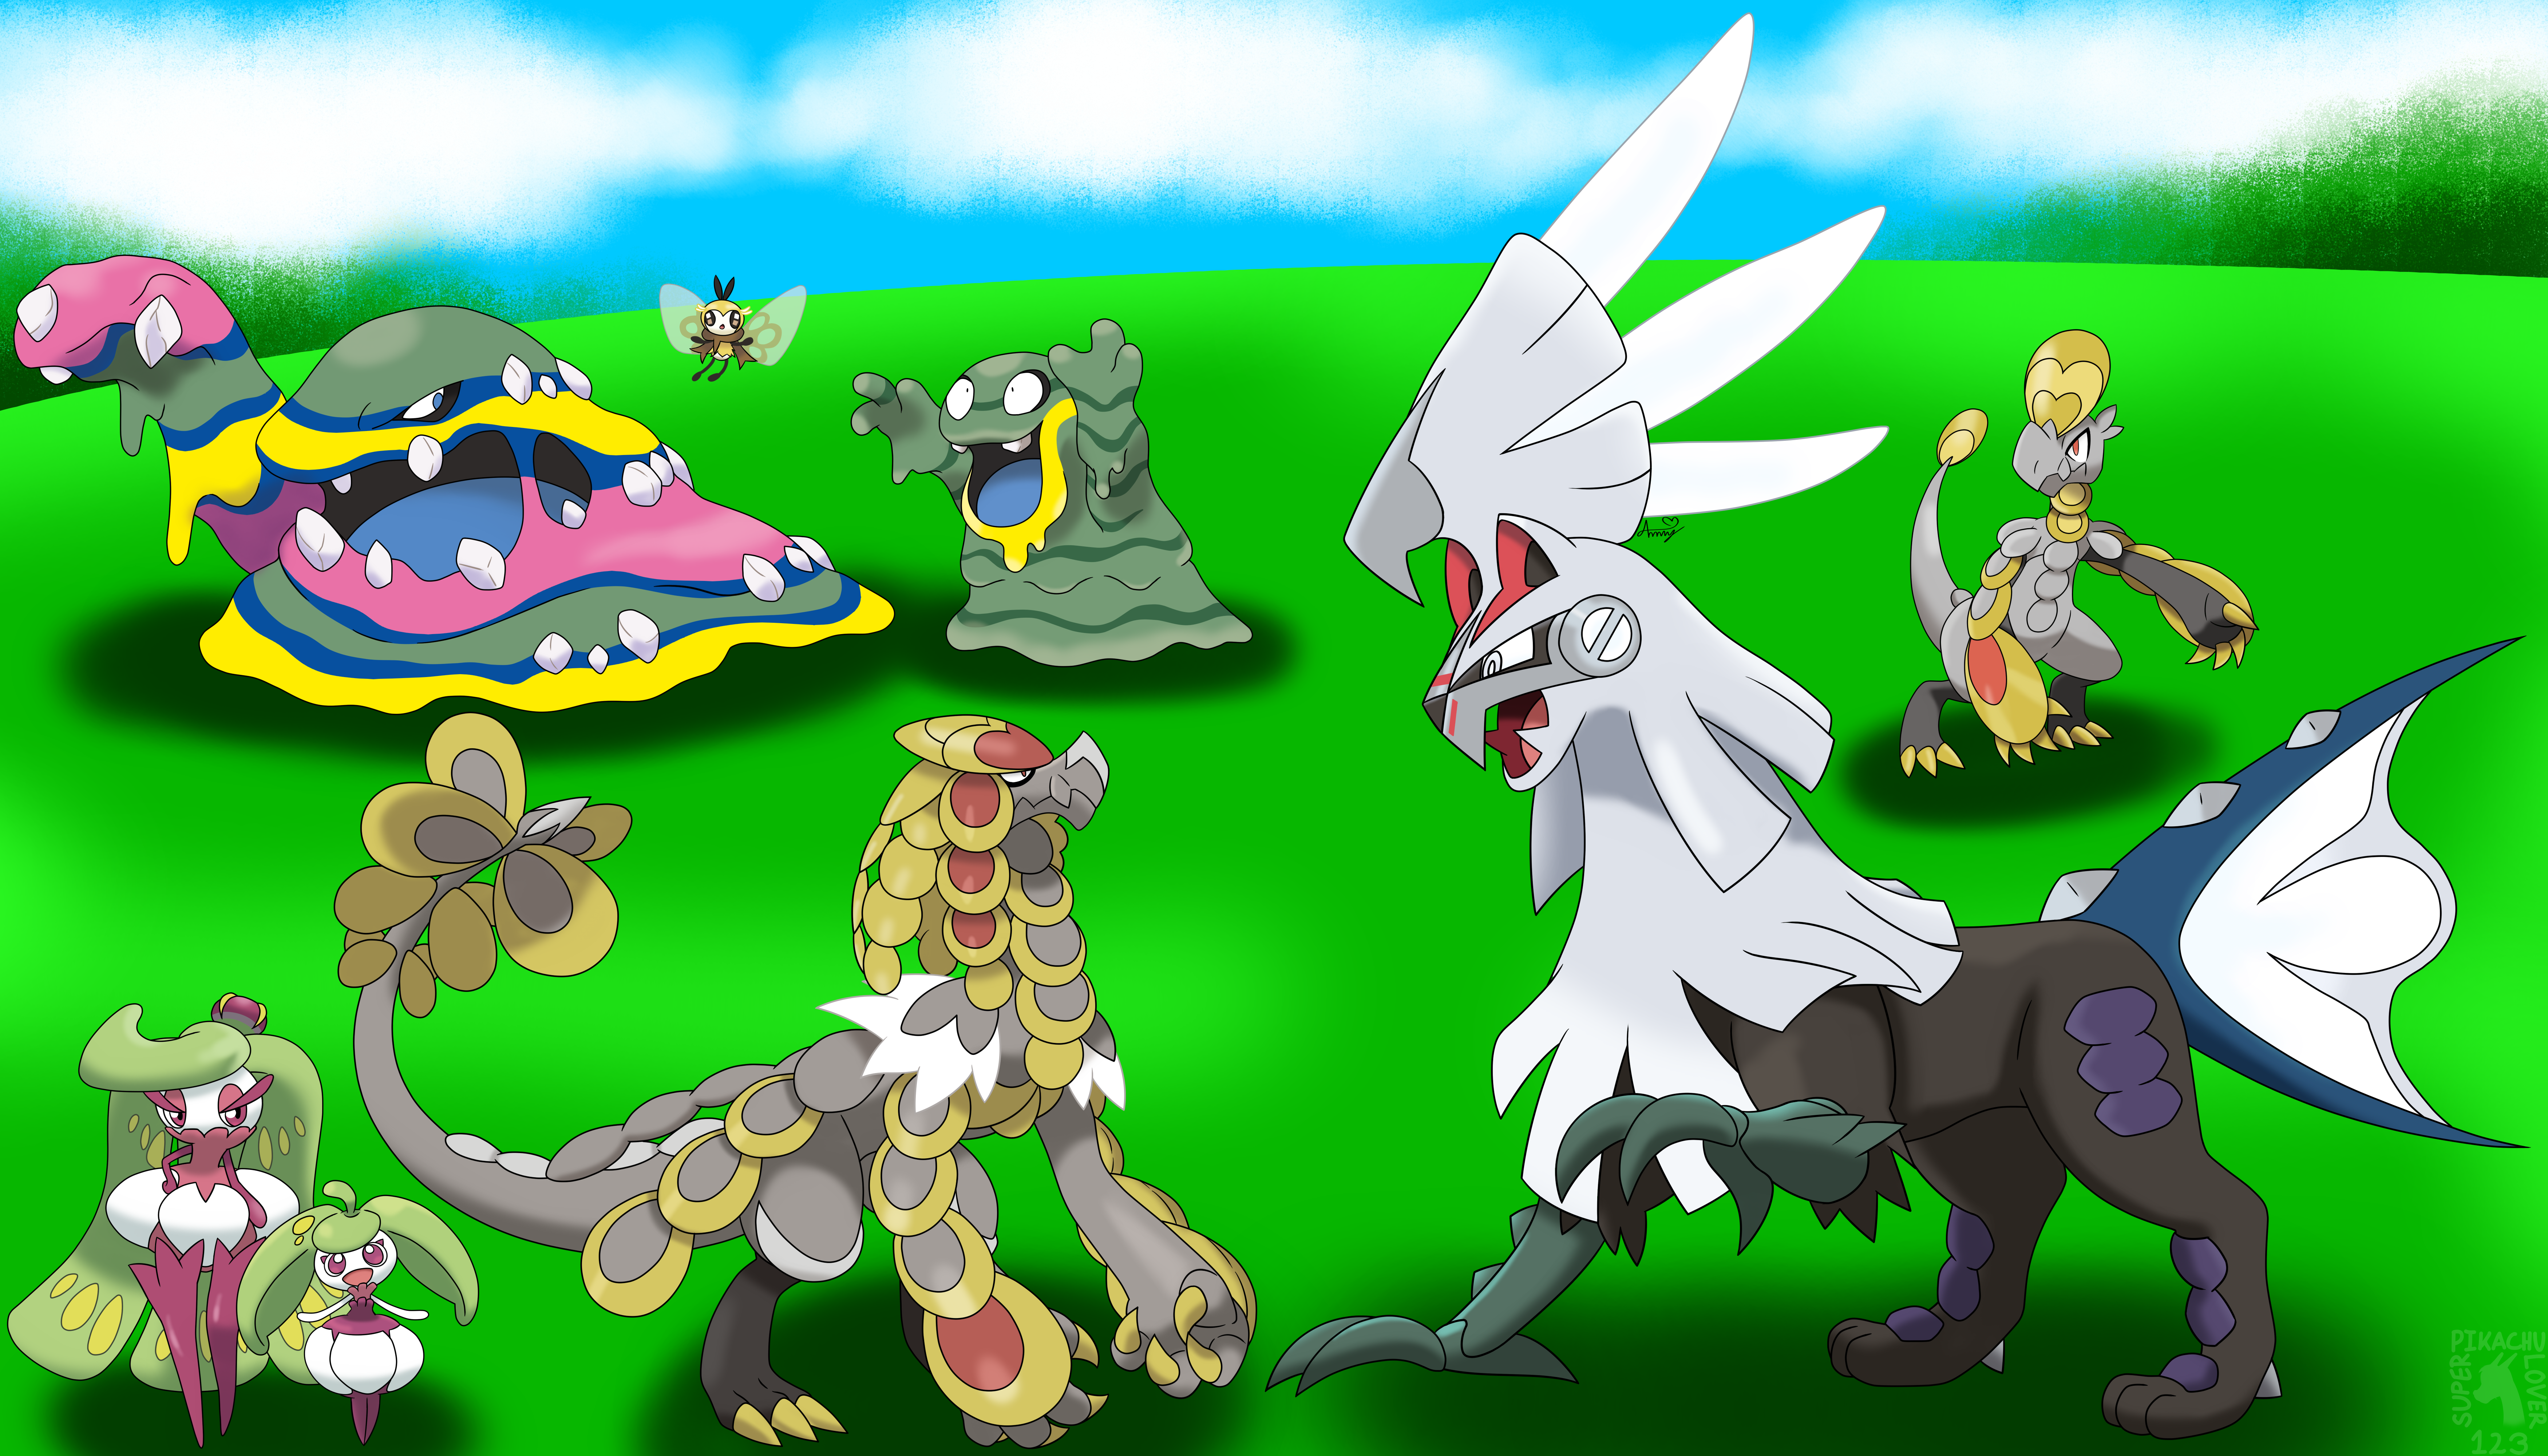 6 more alola pokemon and alolan forms by superpikachulover123 on